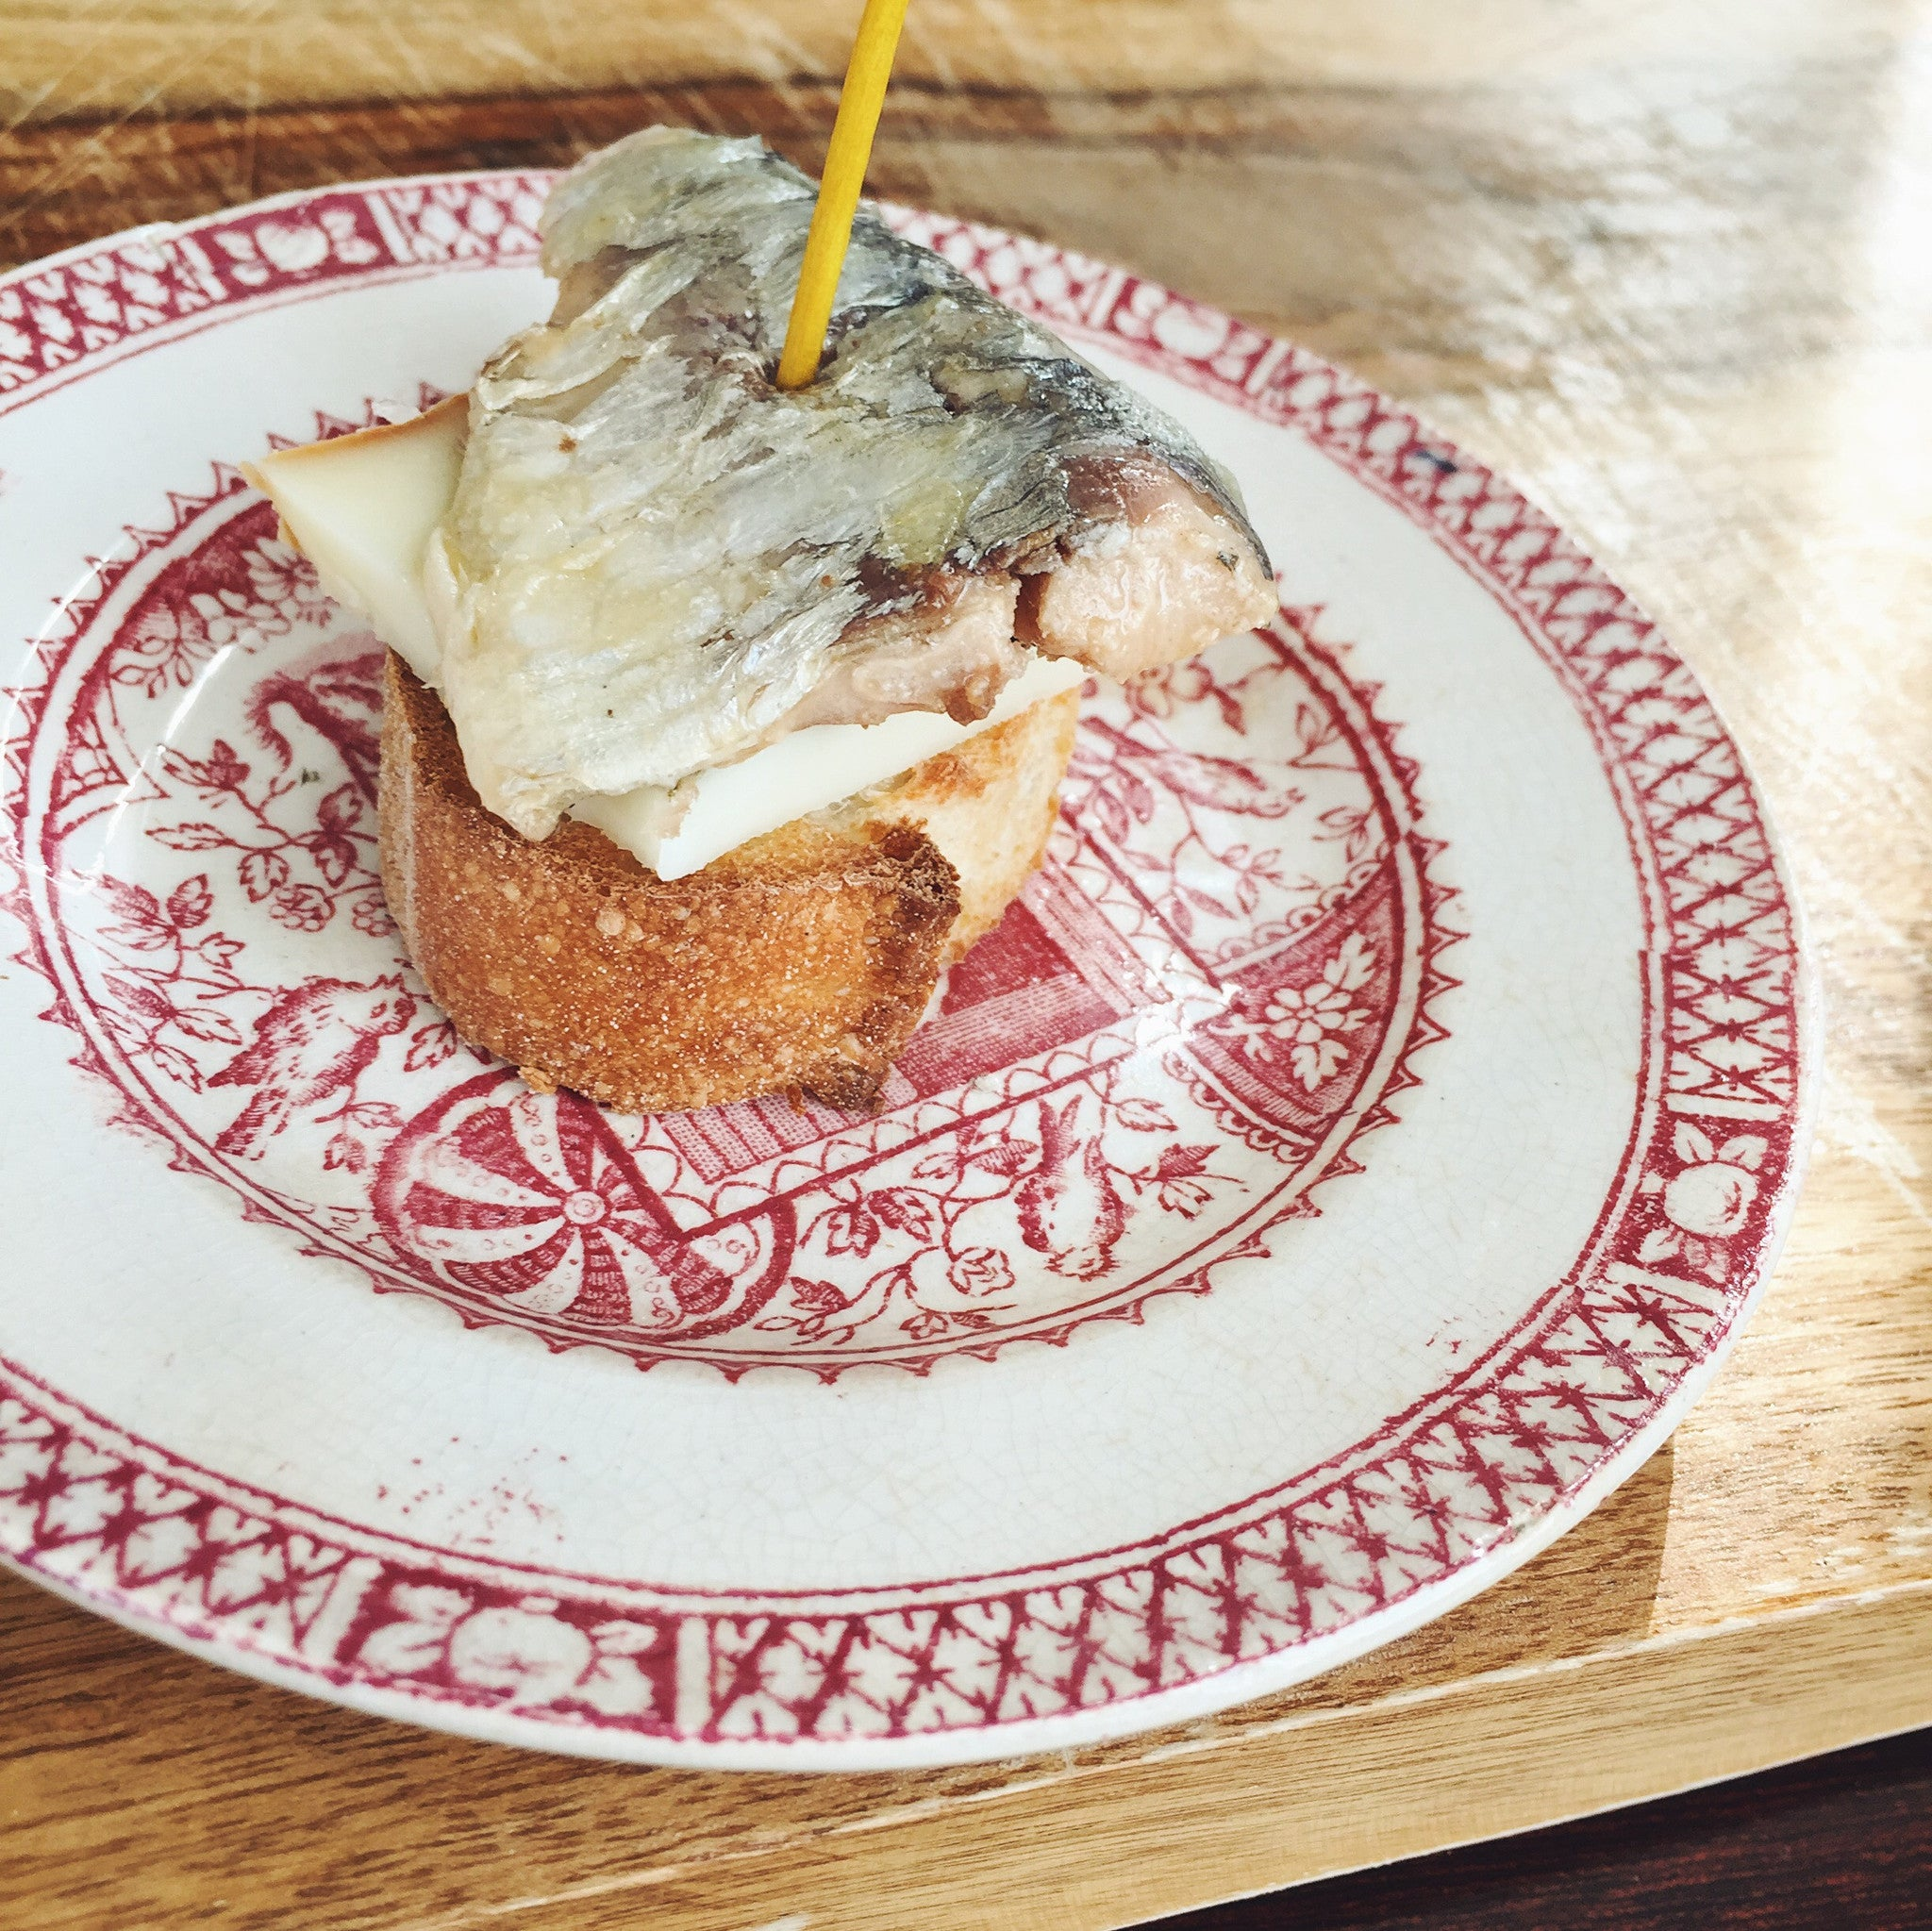 Sardine in Olive Oil with Basque Cheese Pintxo